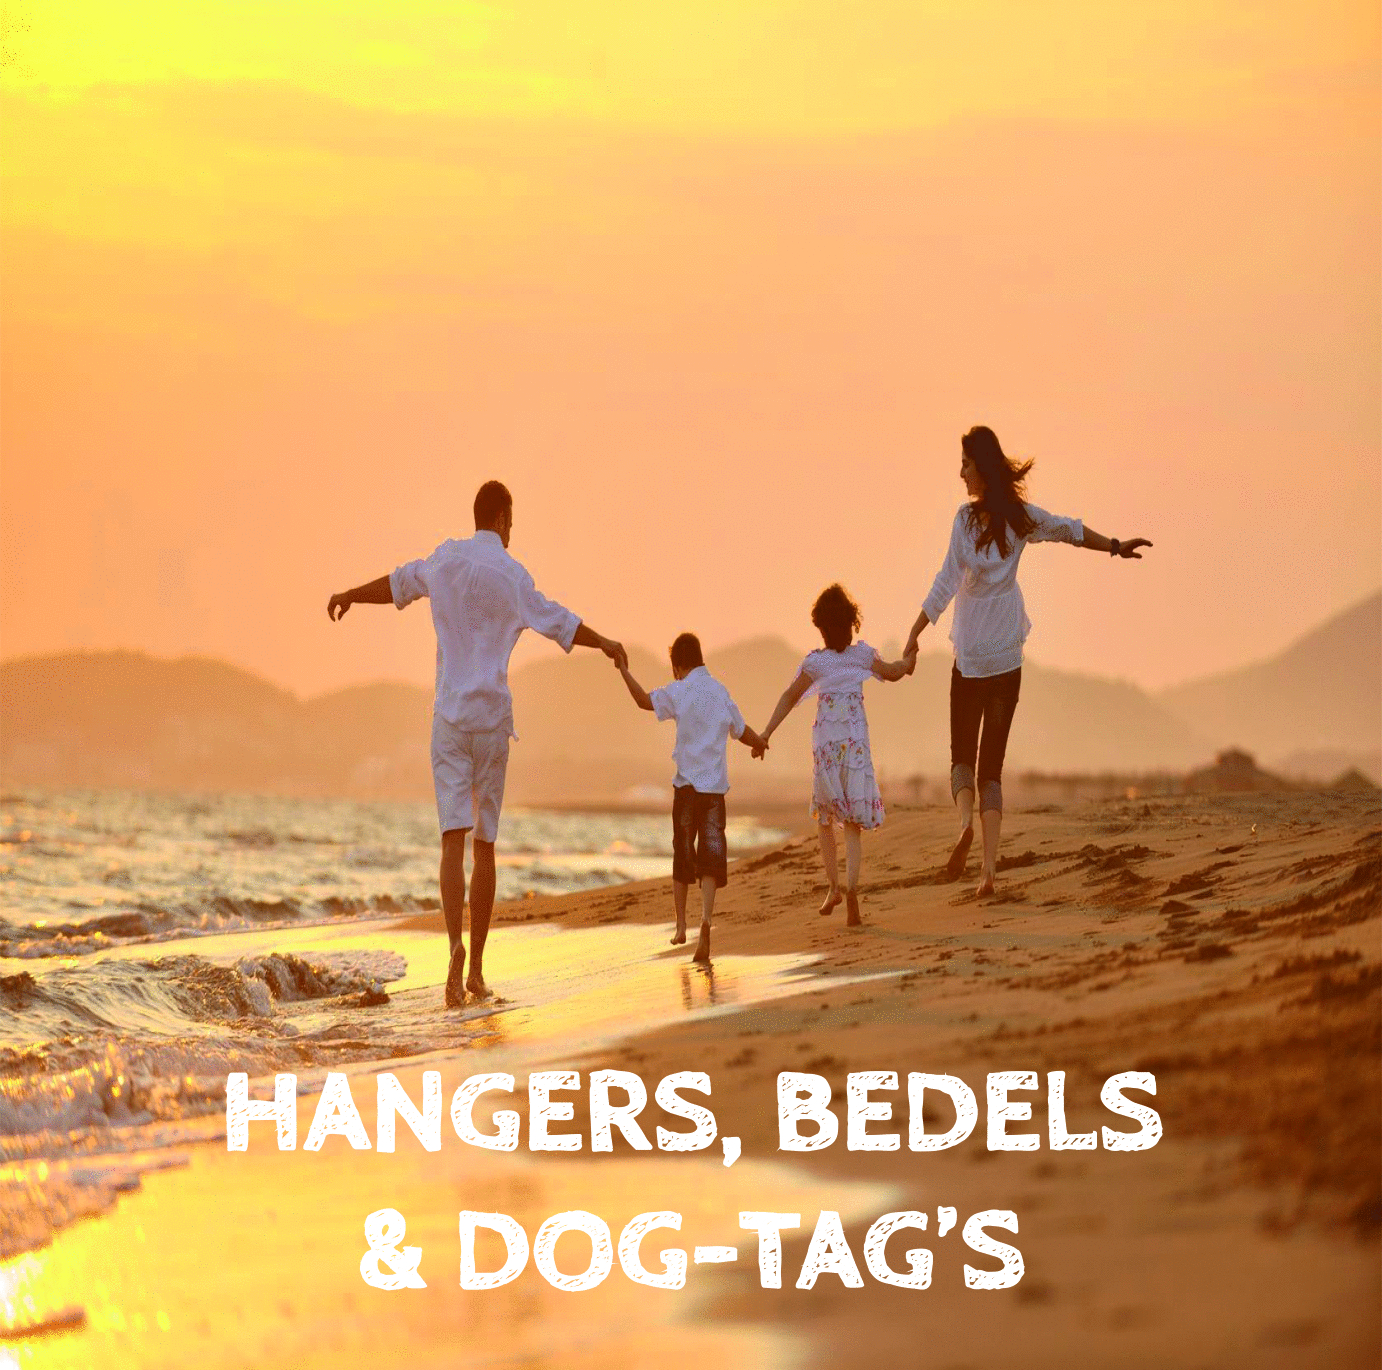 HANGER,_BEDELS__DOG-TAGS